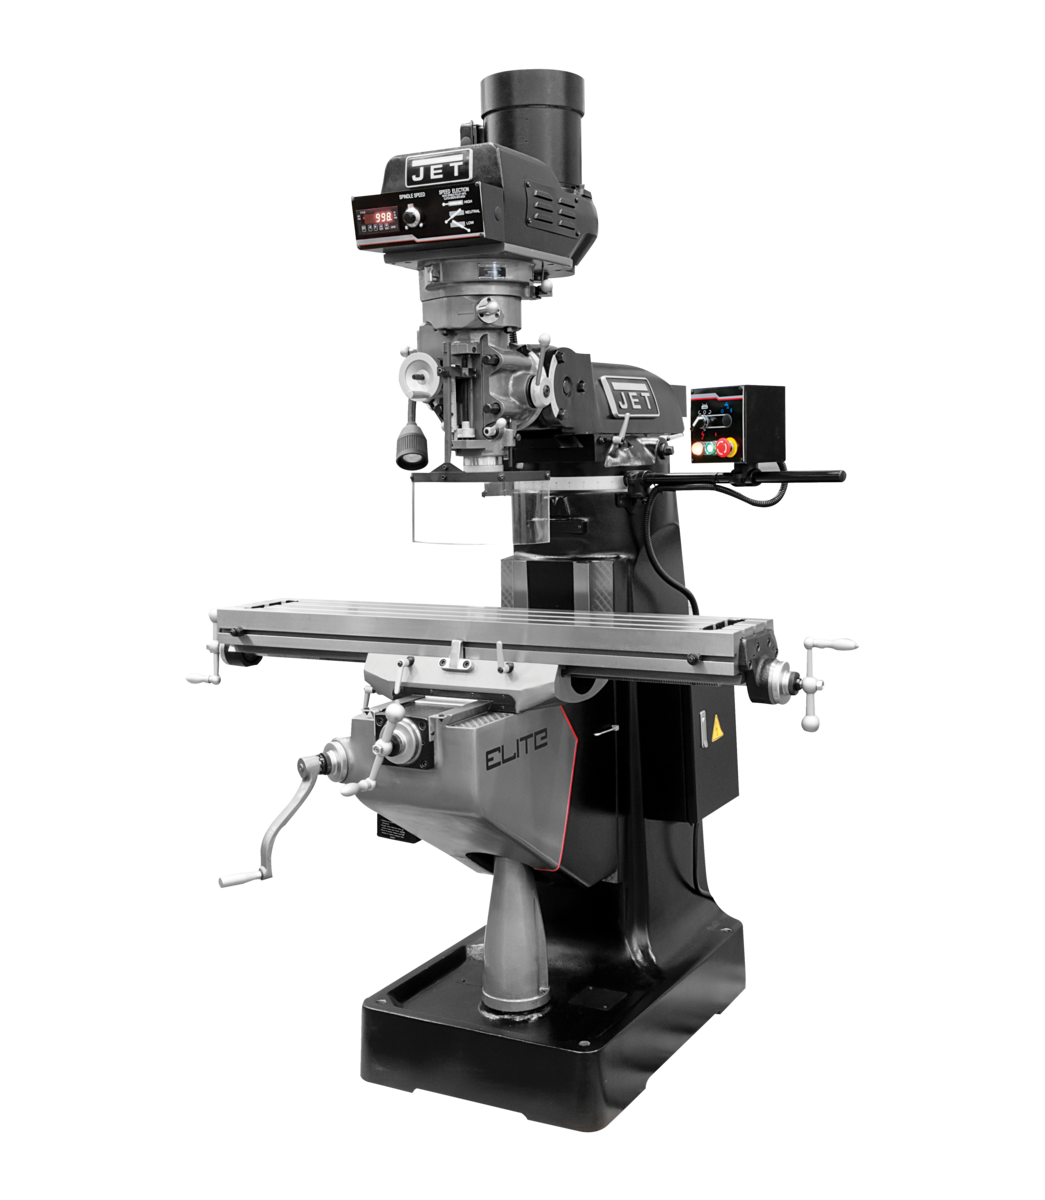 ETM-949EVS Mill With 3-Axis ACU-RITE MILLPWR G2 CNC